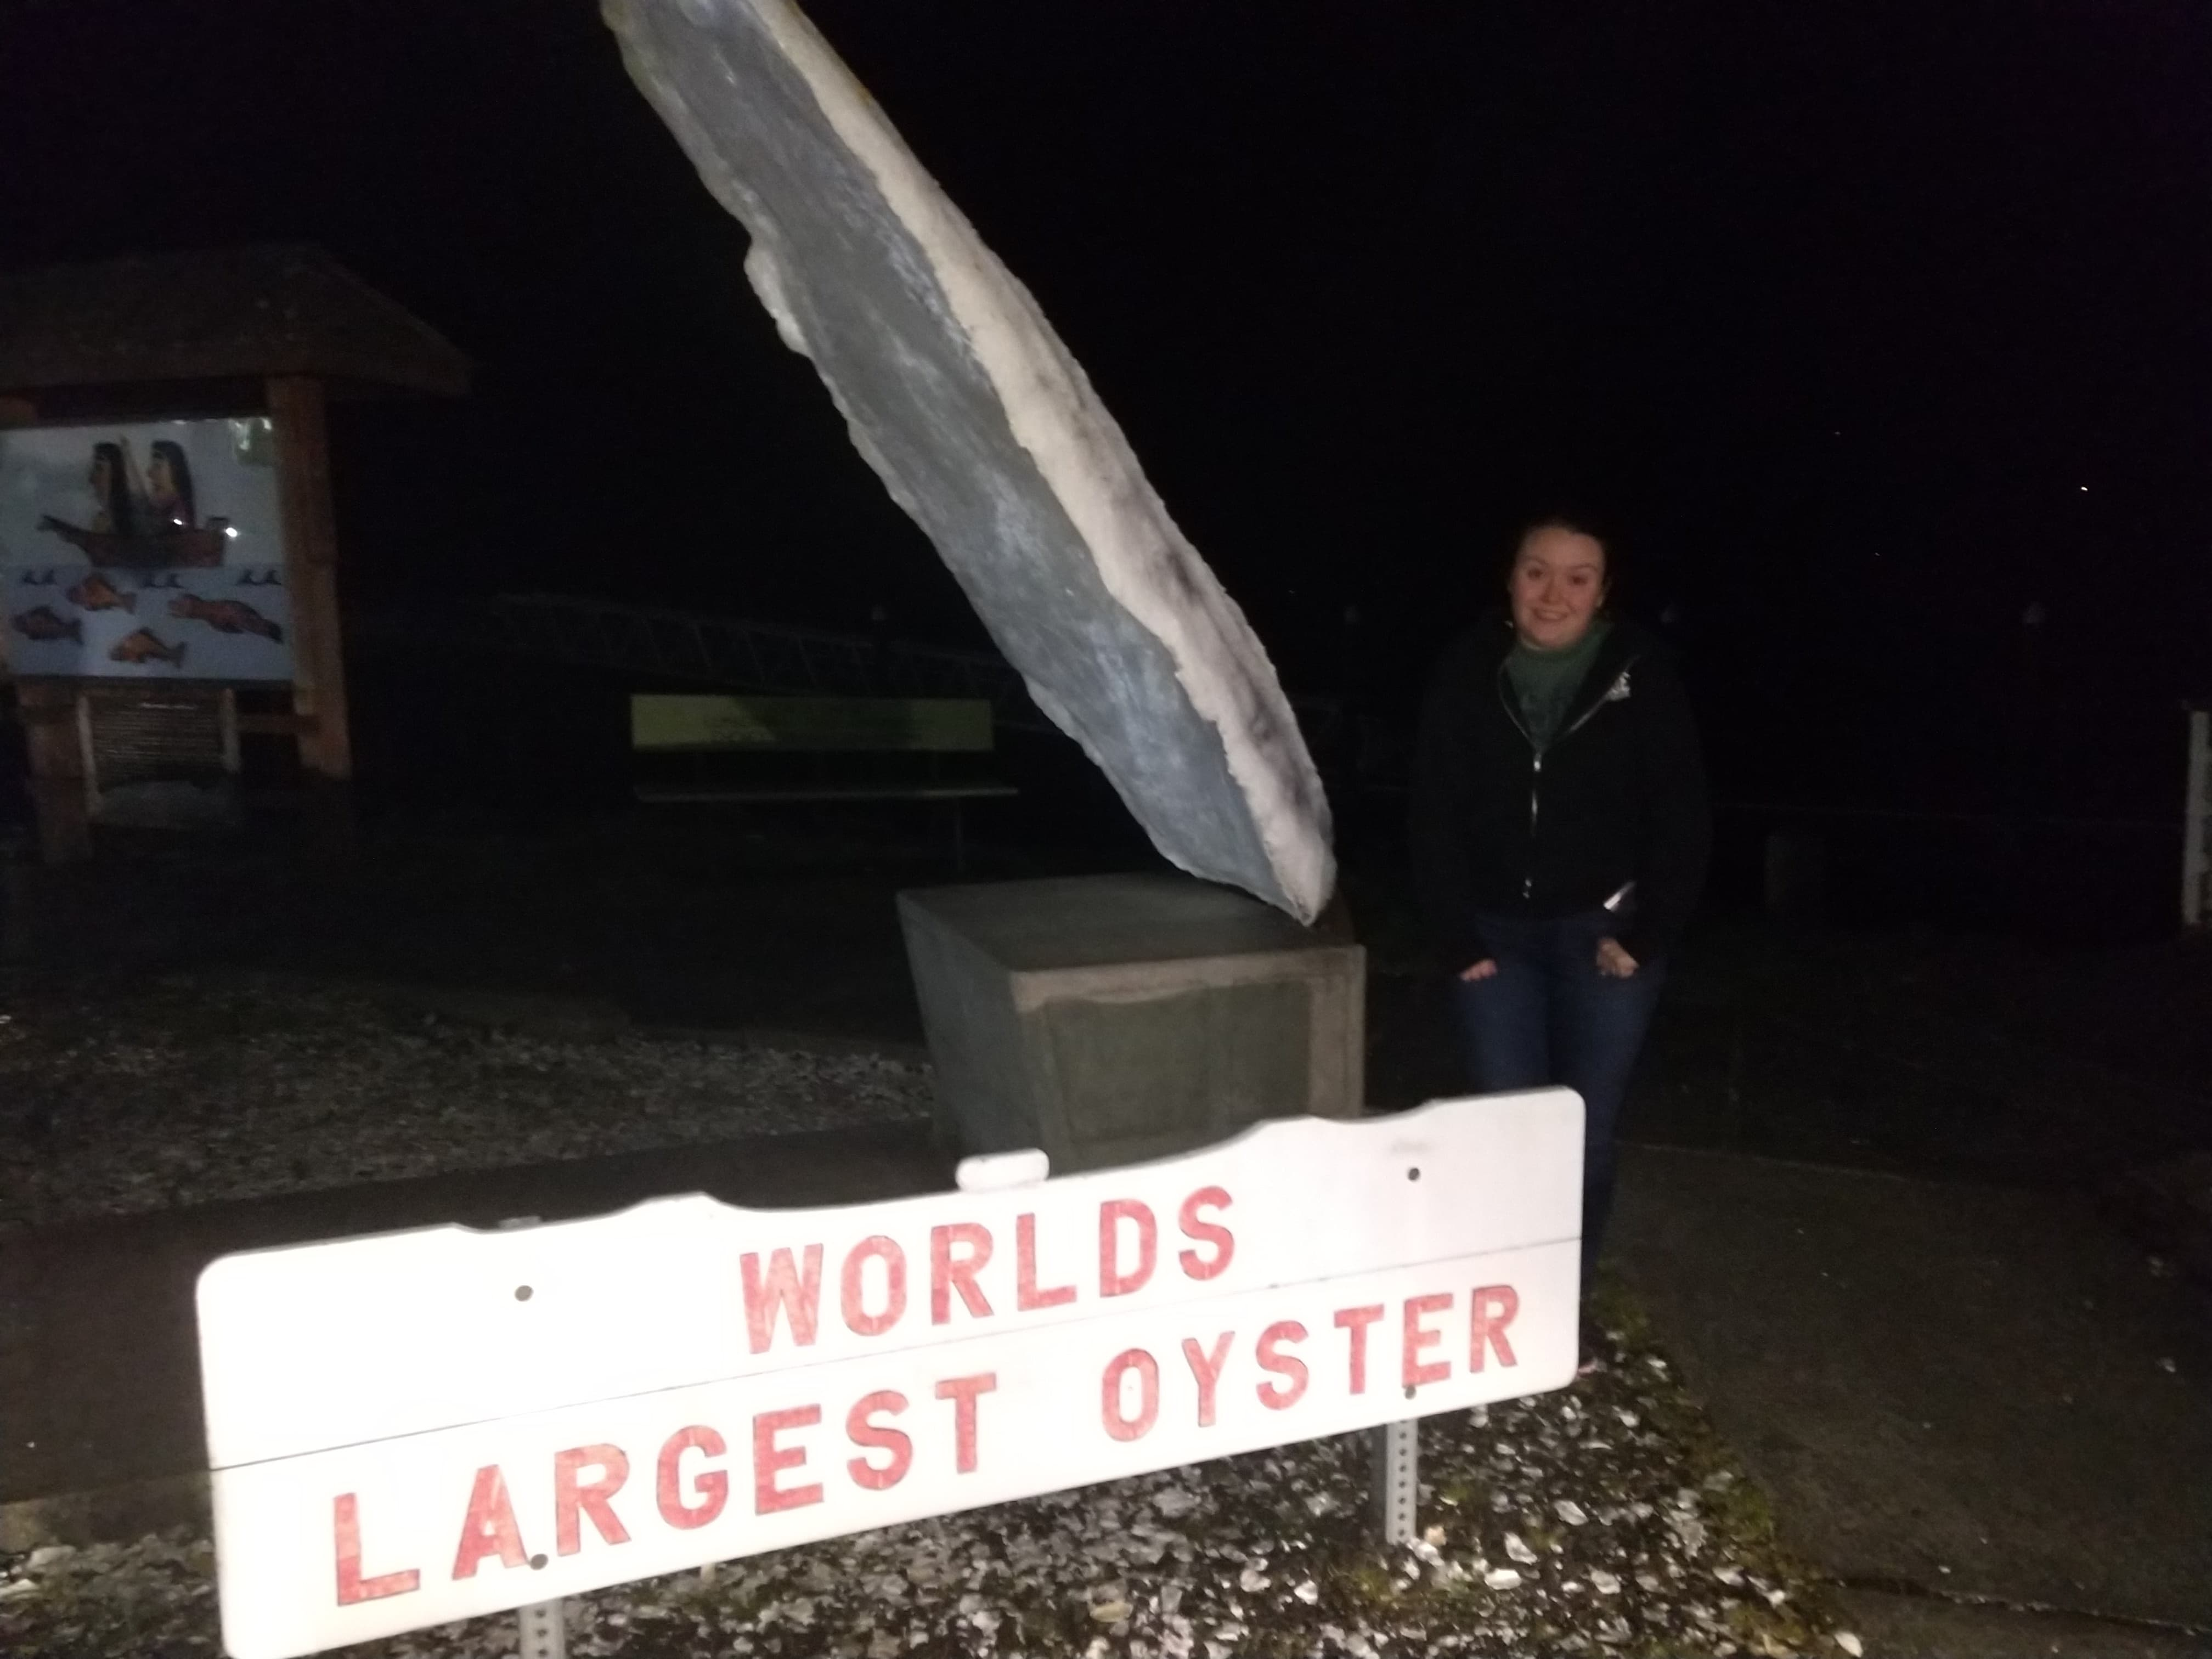 Largest Oyster